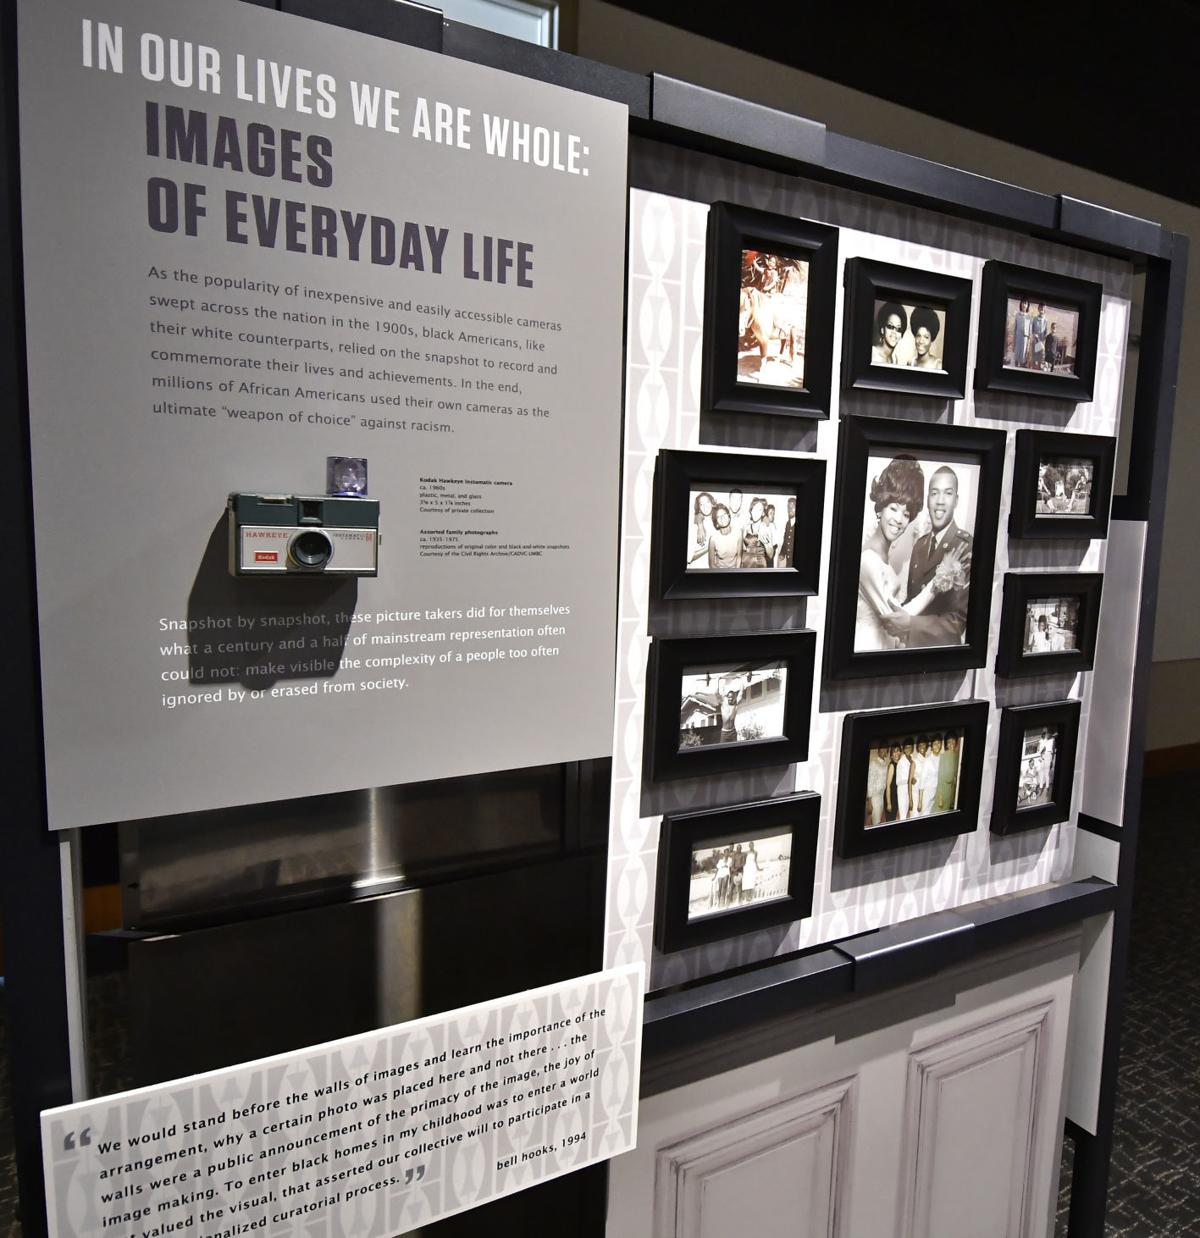 CIVIL RIGHTS EXHIBIT